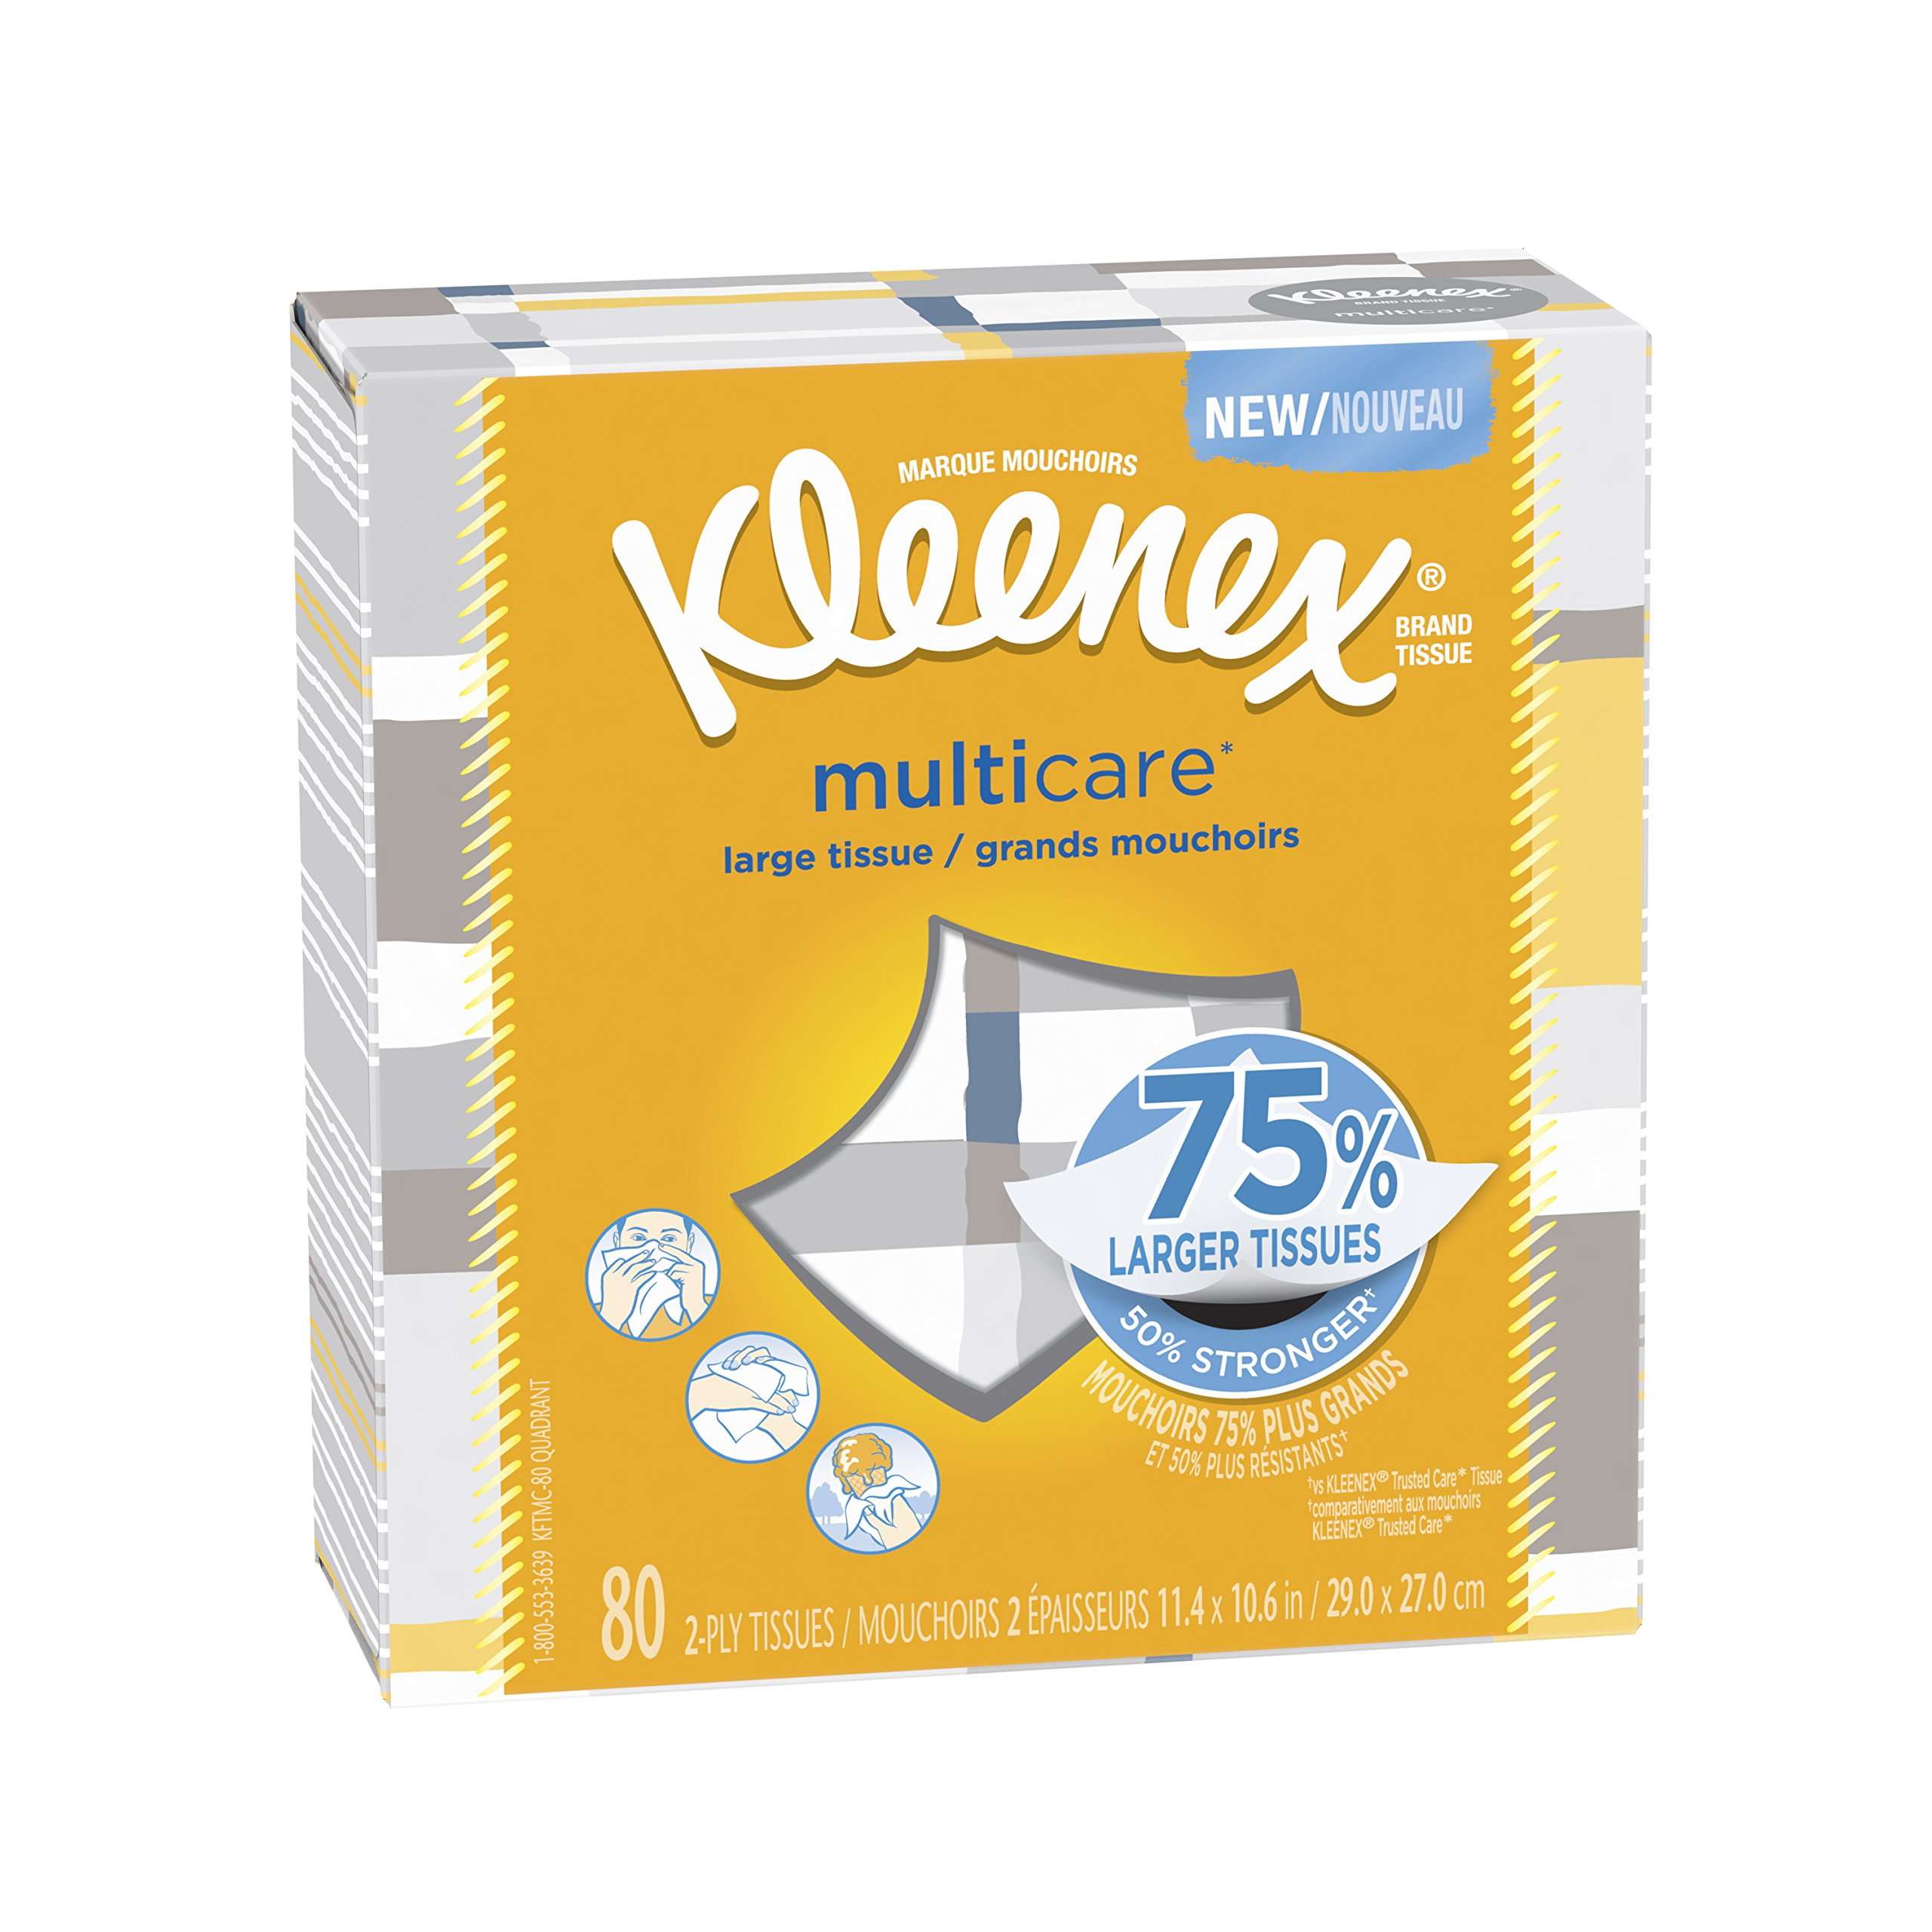 Kleenex Multicare Facial Tissues, 80 Tissues per  Box, 6 Packs by Kleenex